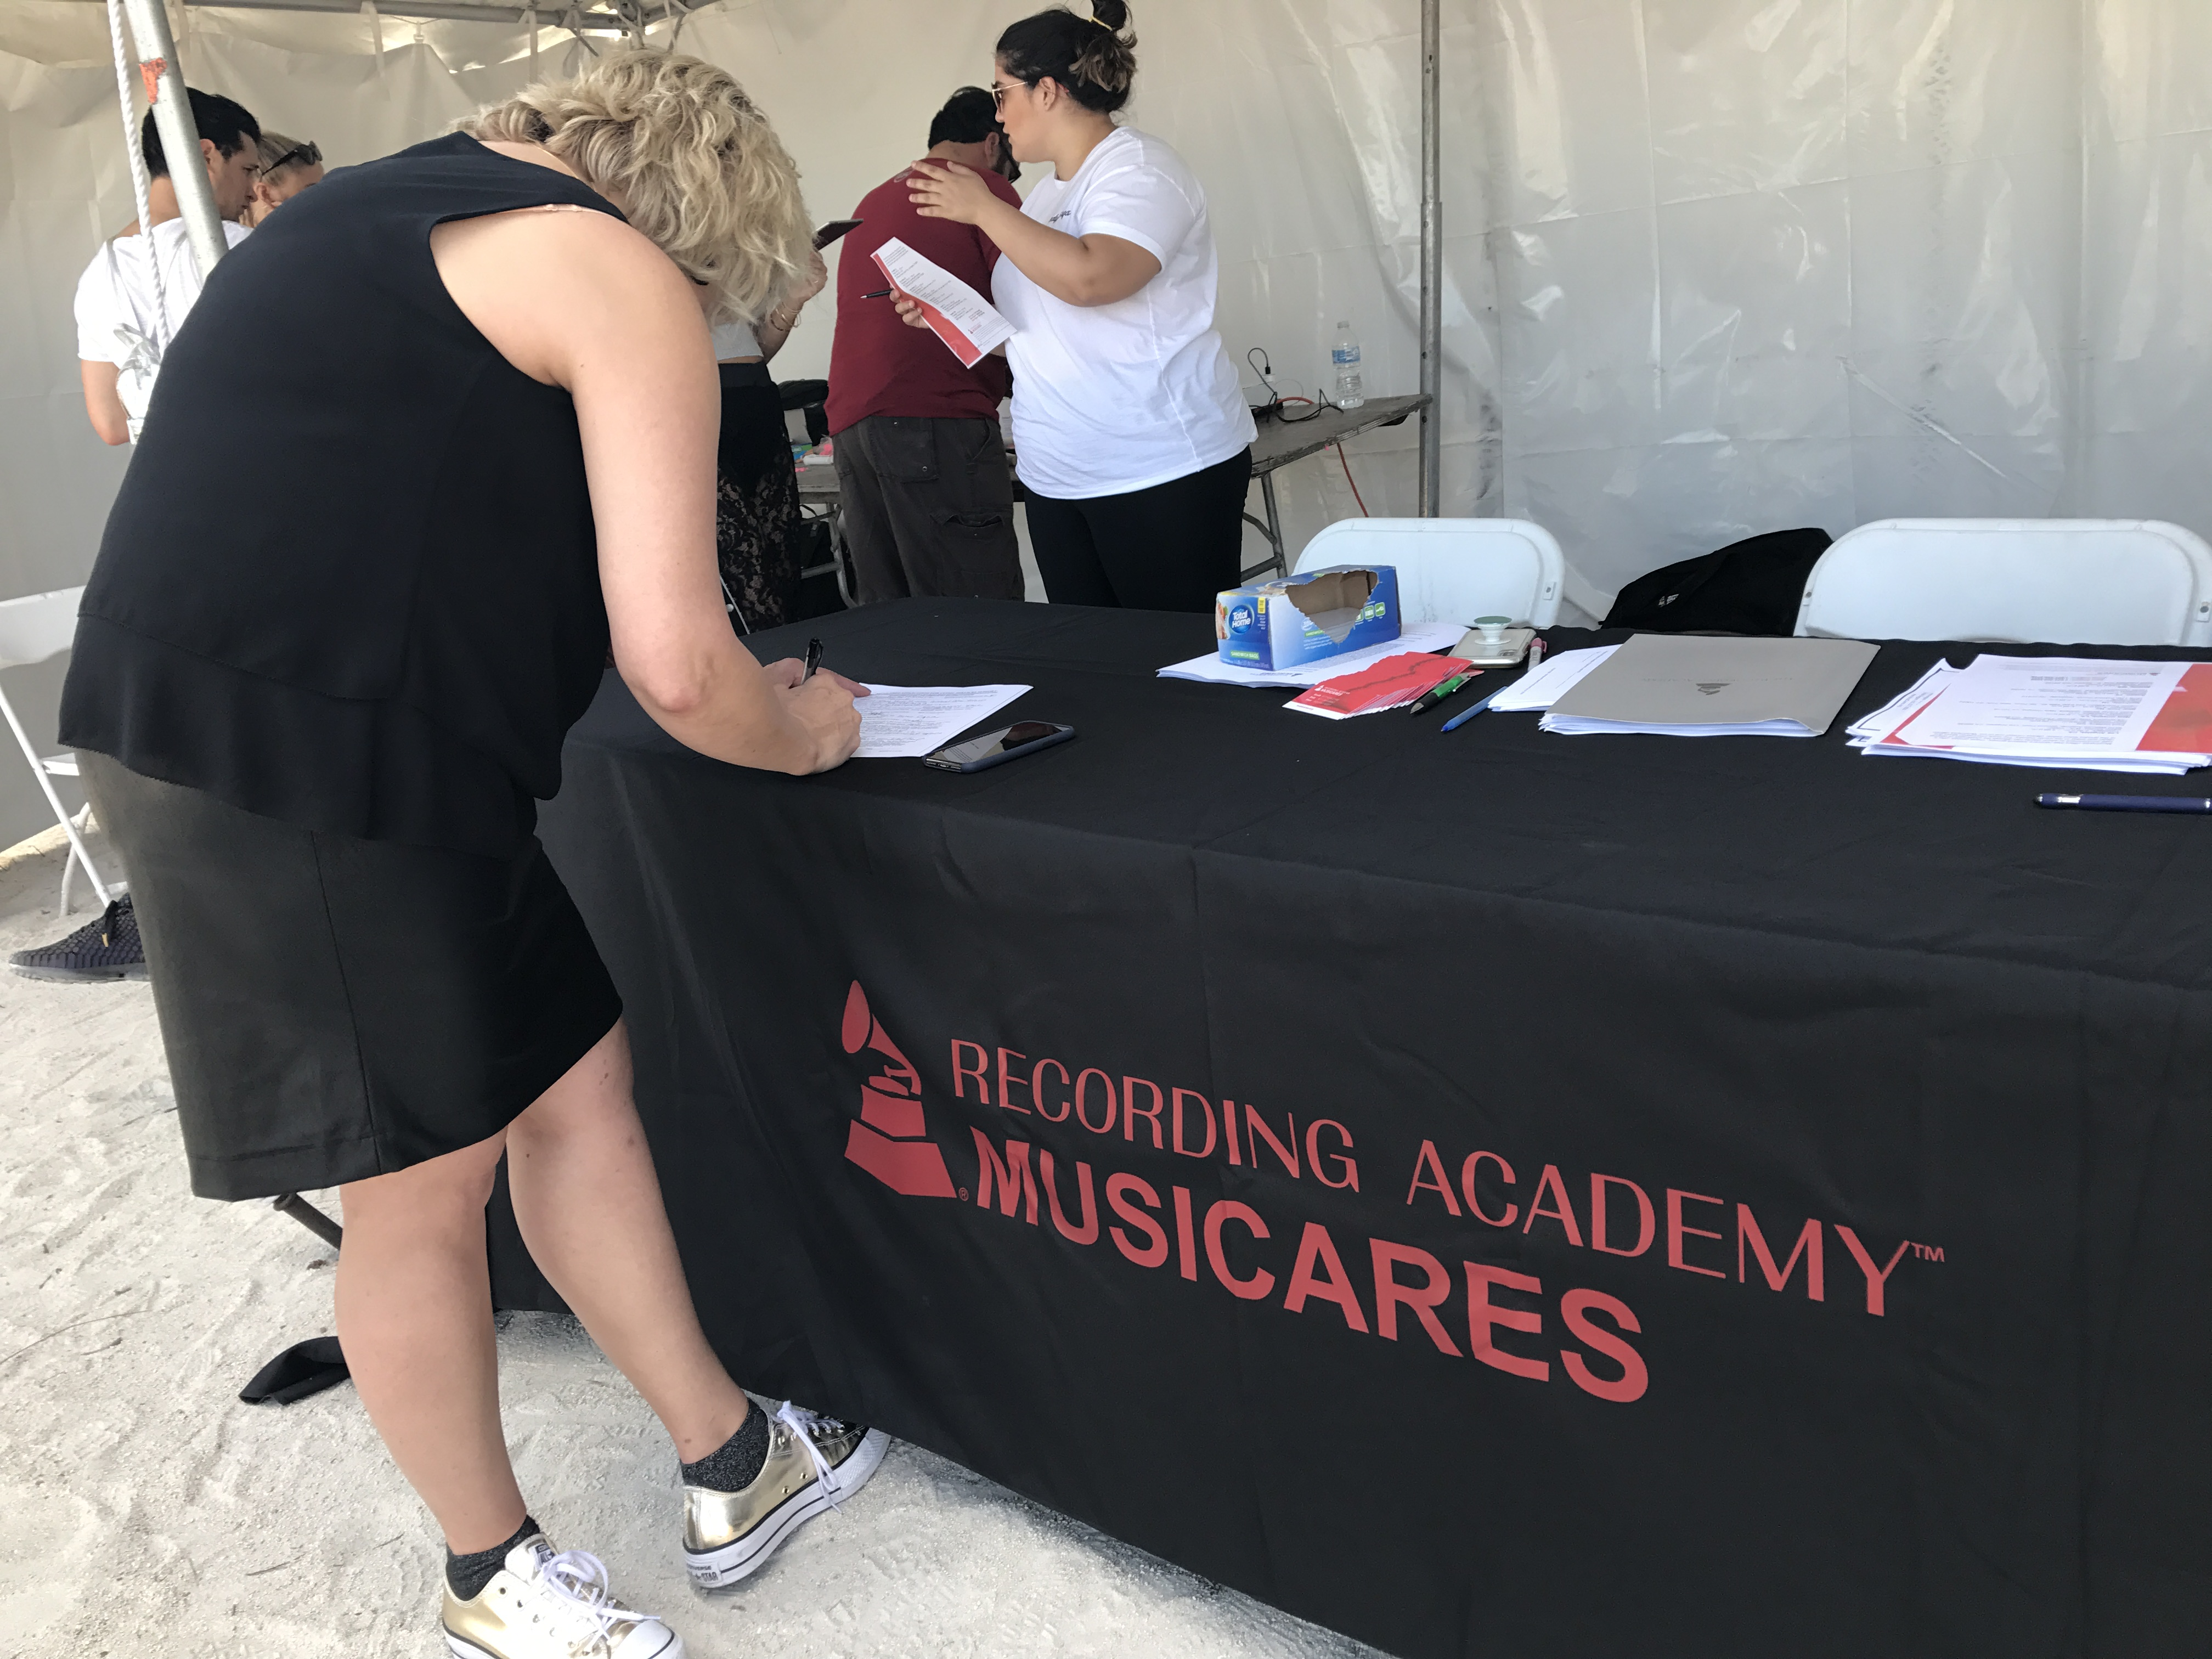 MusiCares Booth